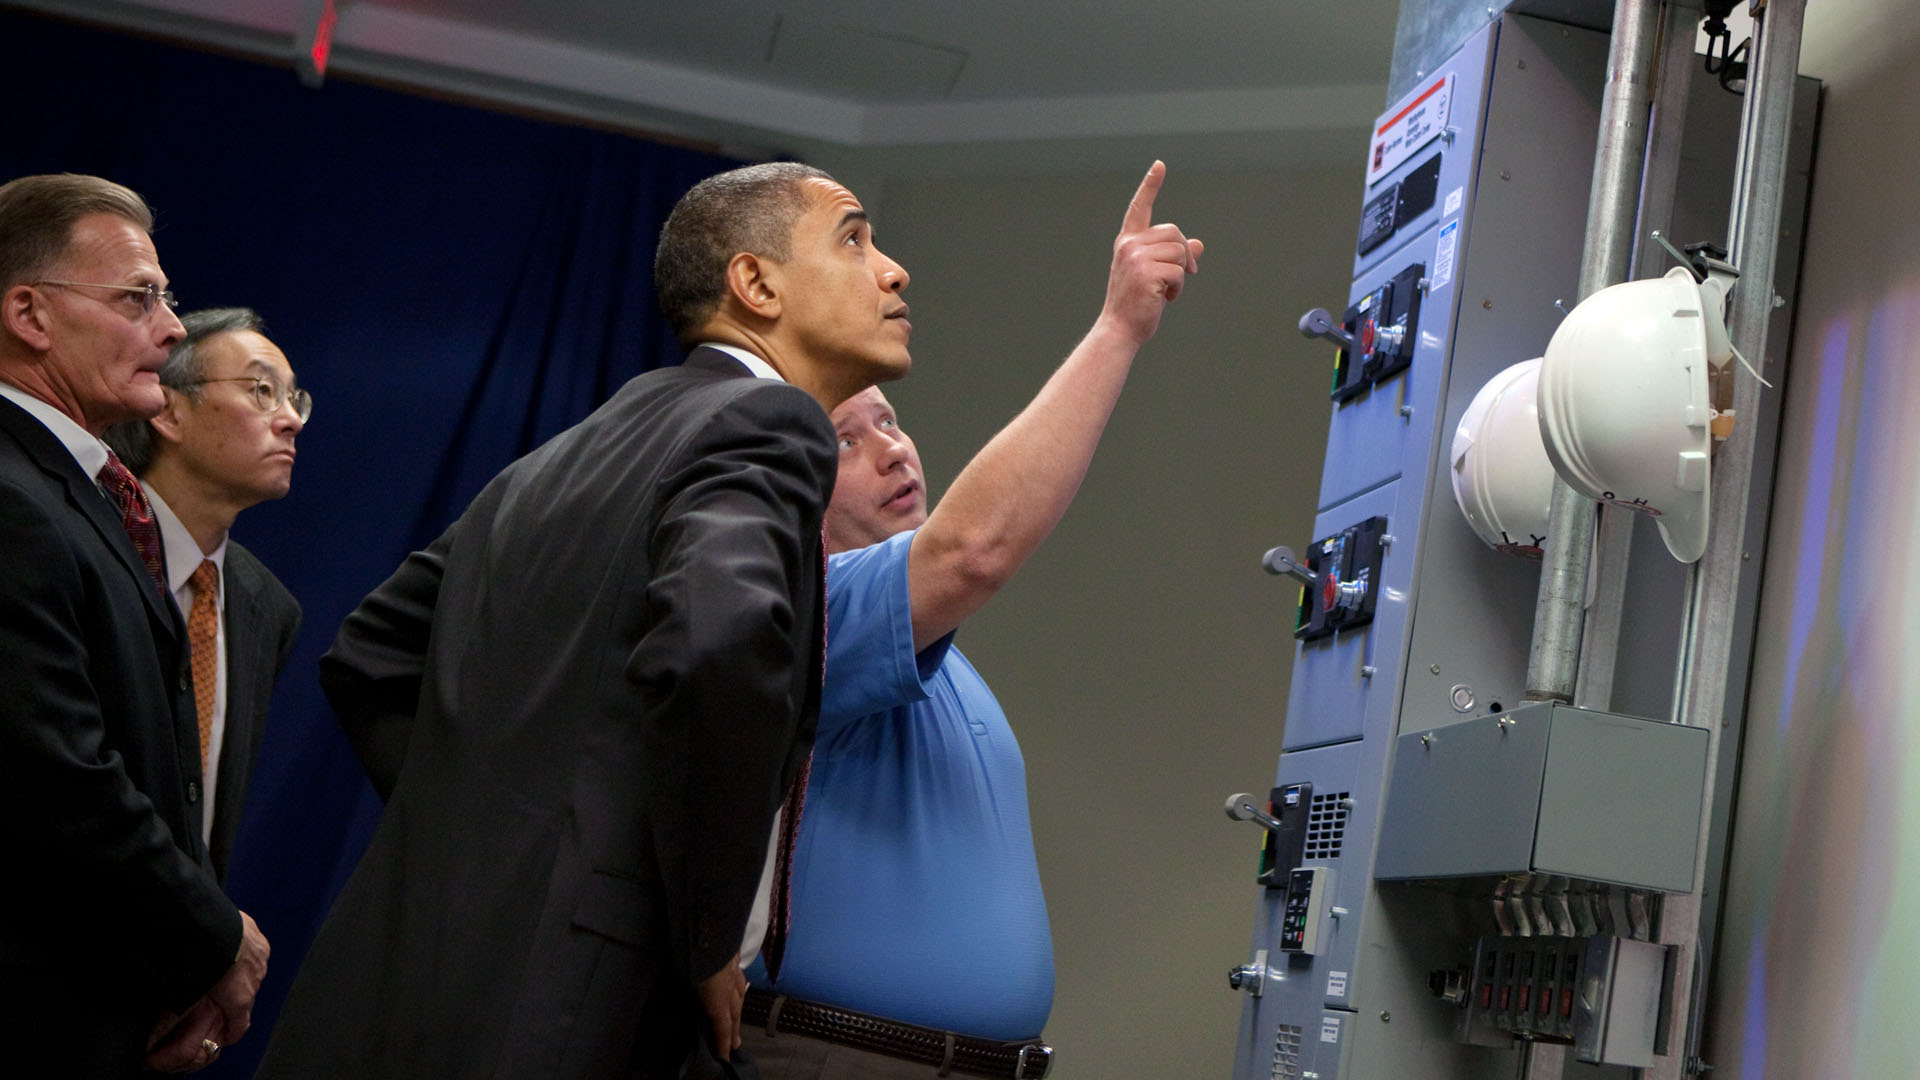 President Obama talks about Energy in Maryland